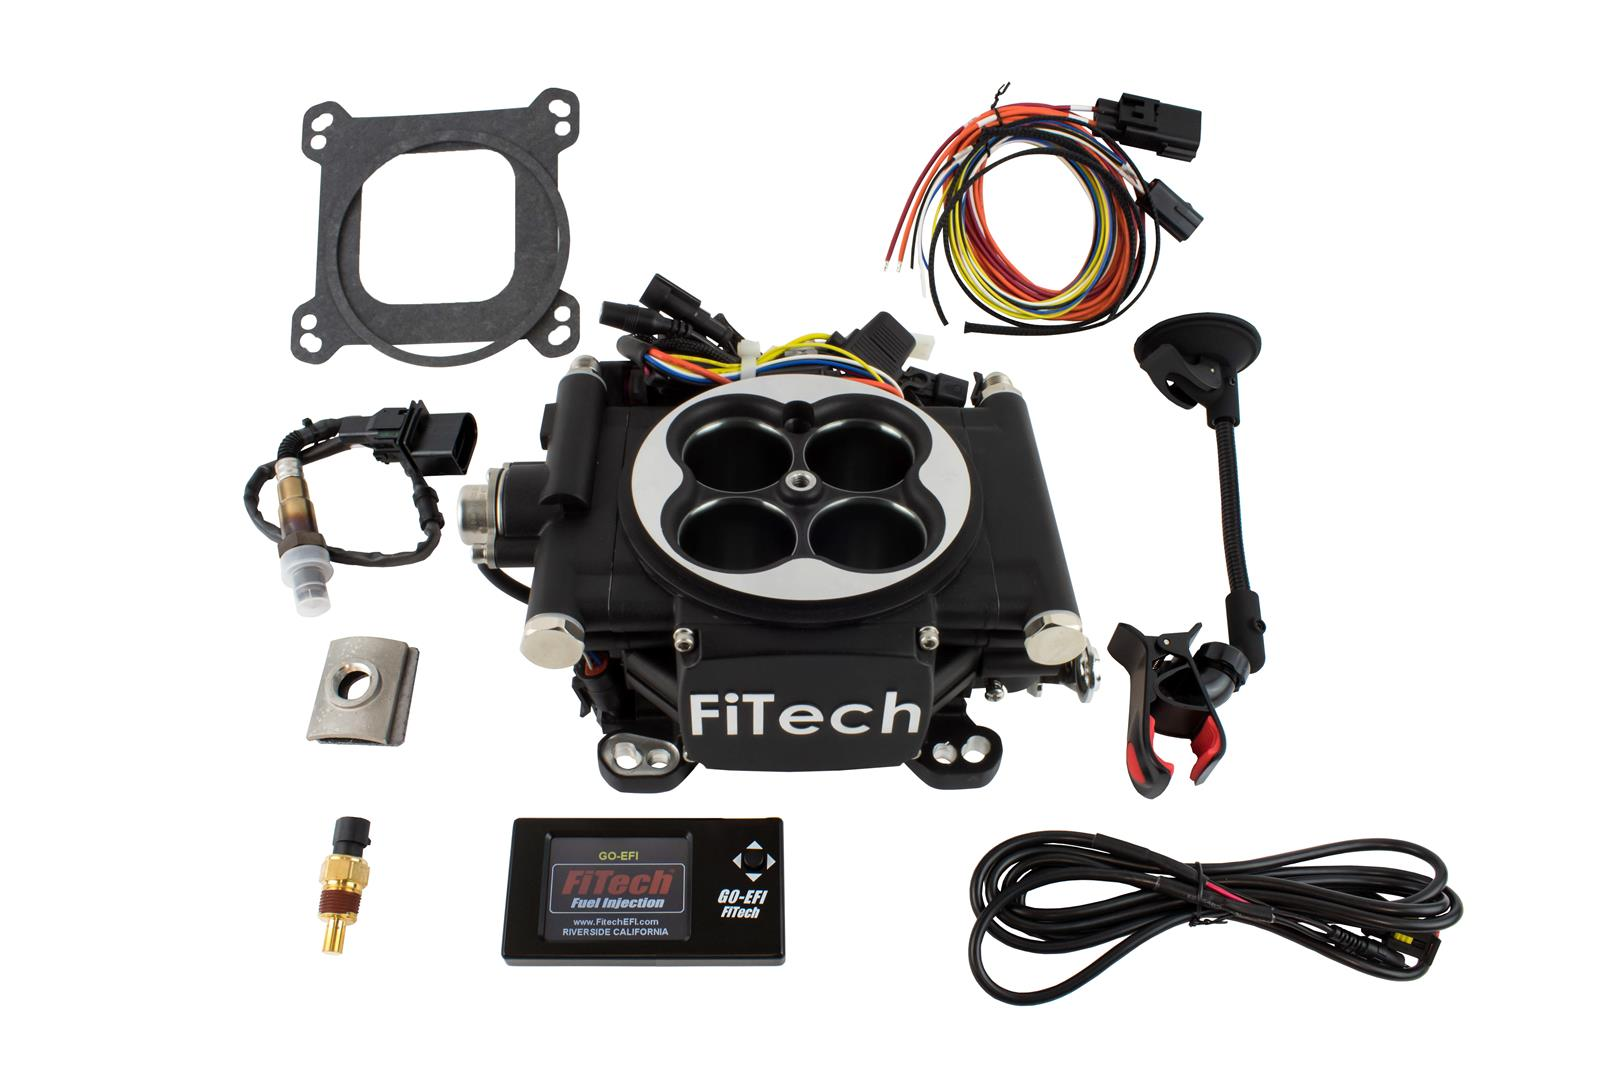 Fitech Go Efi 4 600 Hp Self Tuning Fuel Injection Systems 30002 Ford 460 Msd Distributor To 6al Wiring Free Shipping On Orders Over 99 At Summit Racing